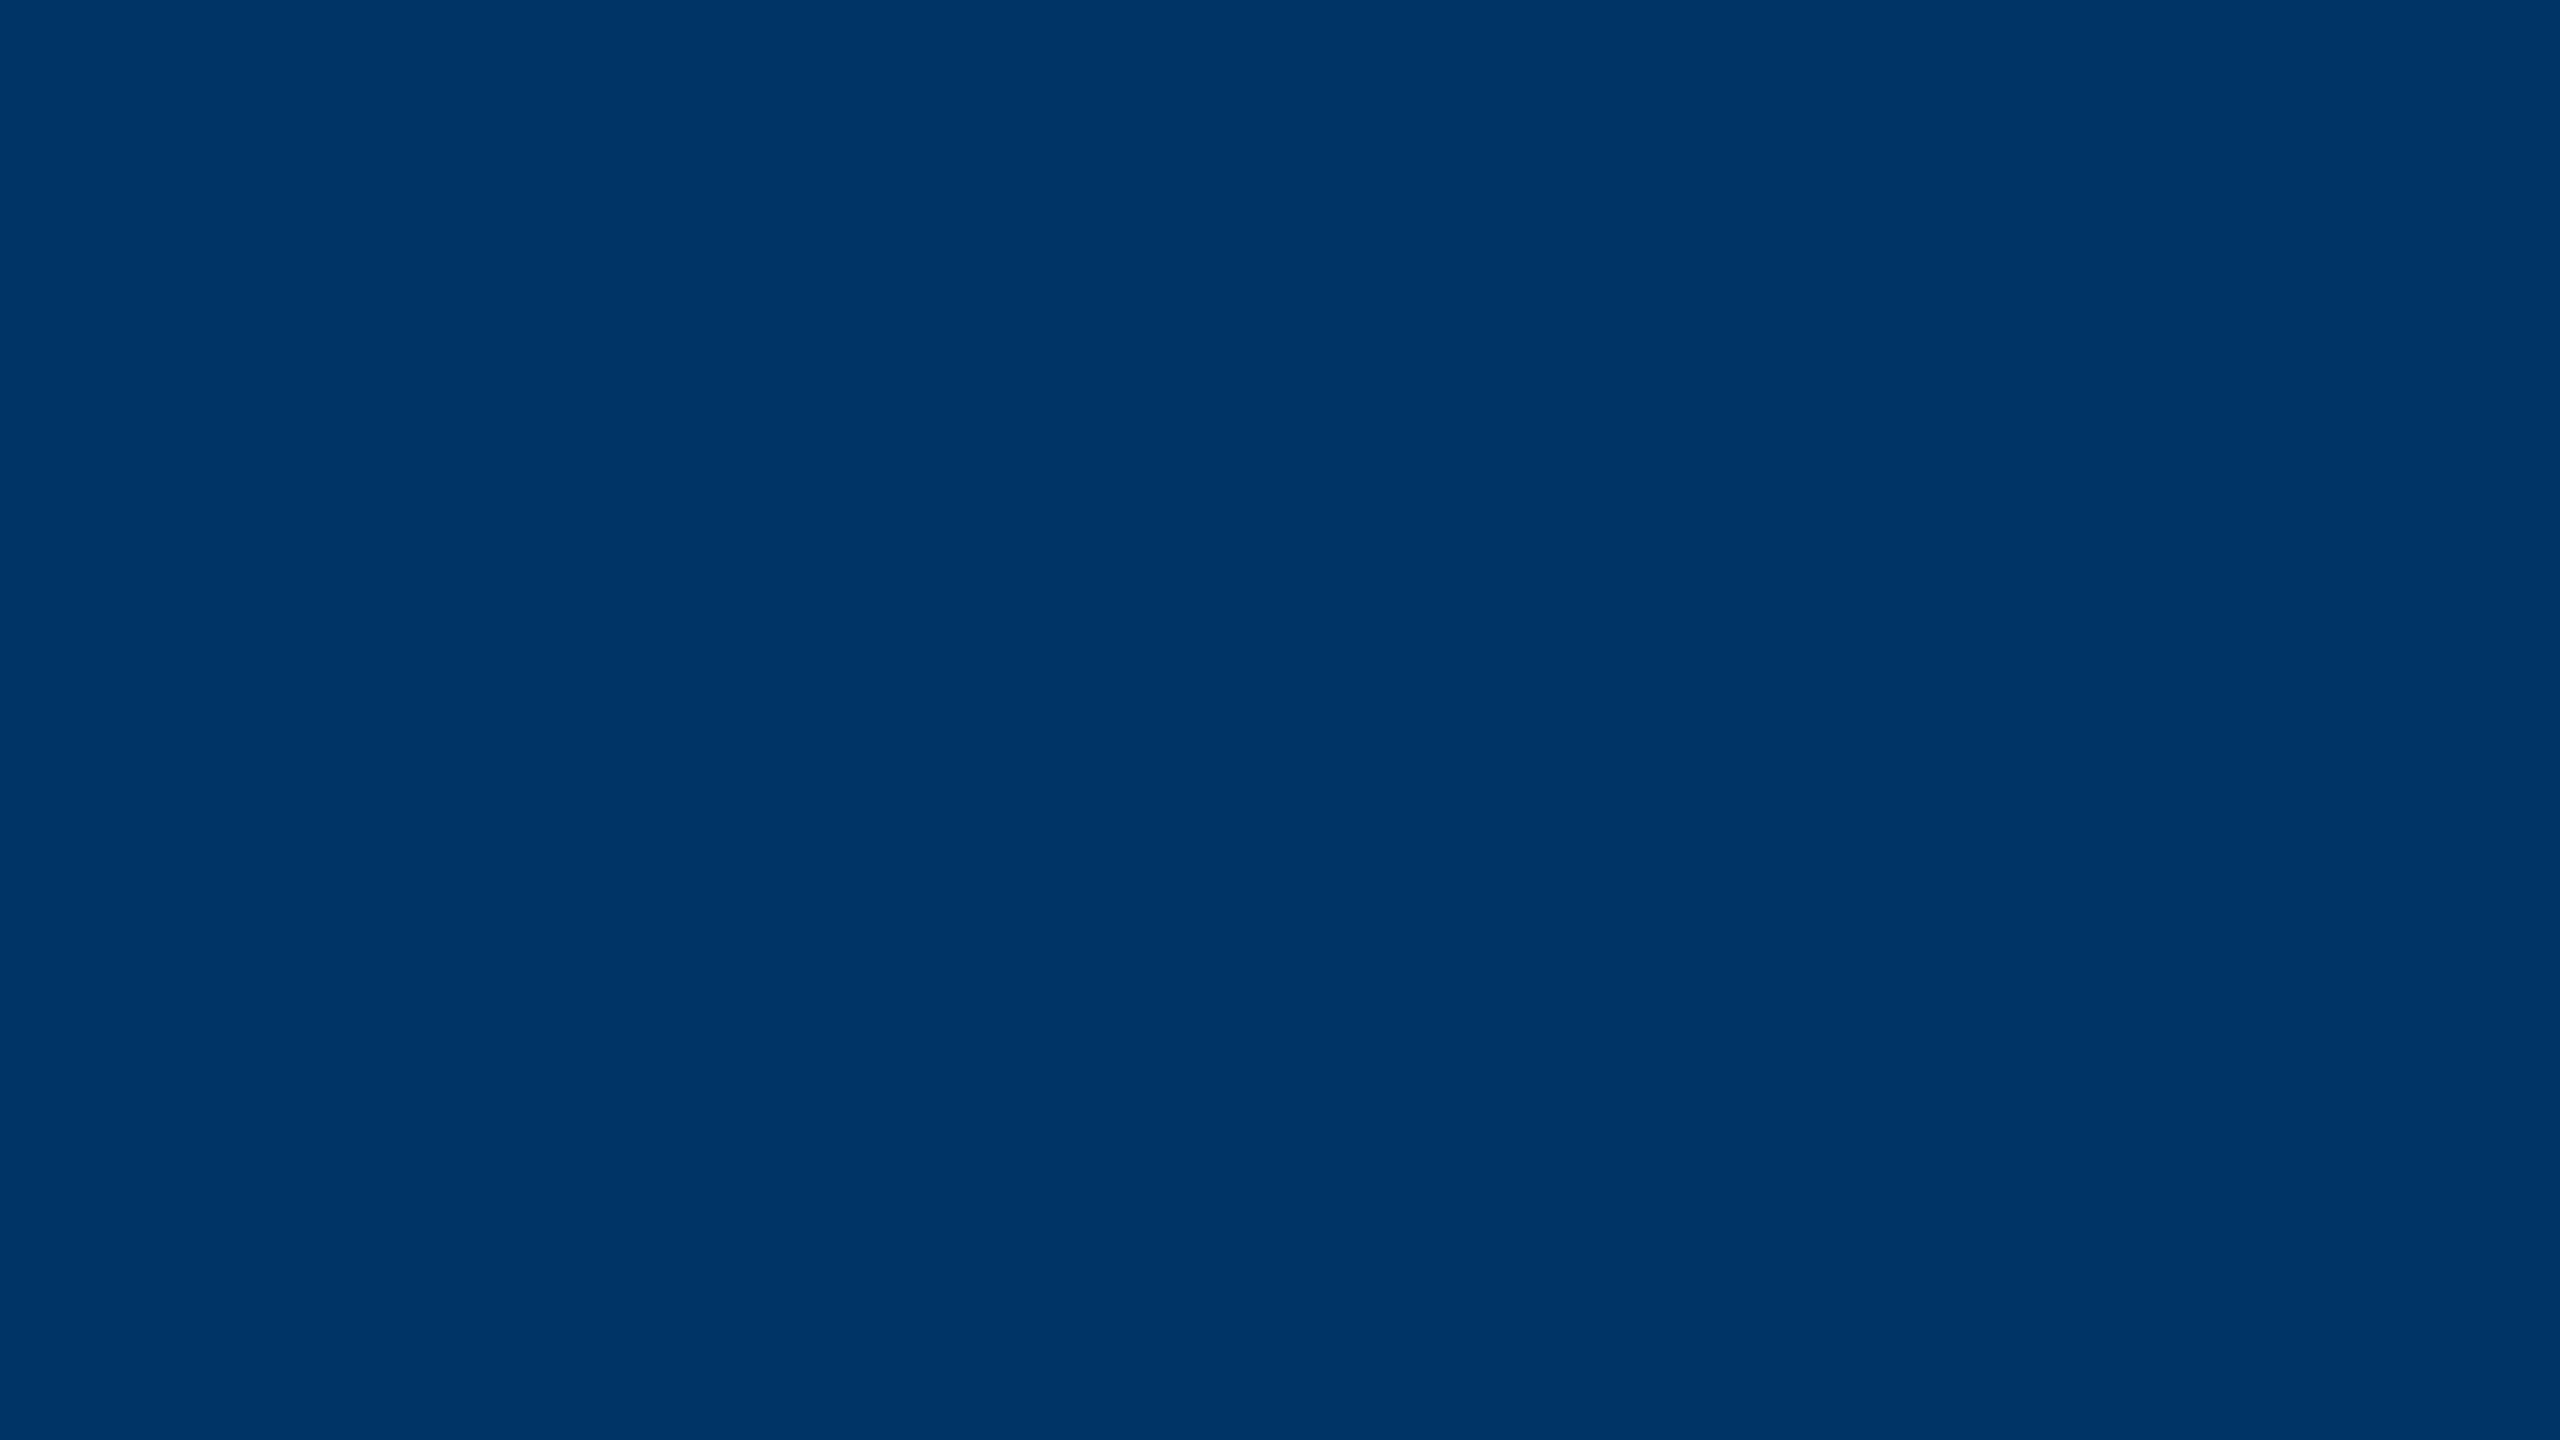 Solid Navy Blue Background Solid navy blu